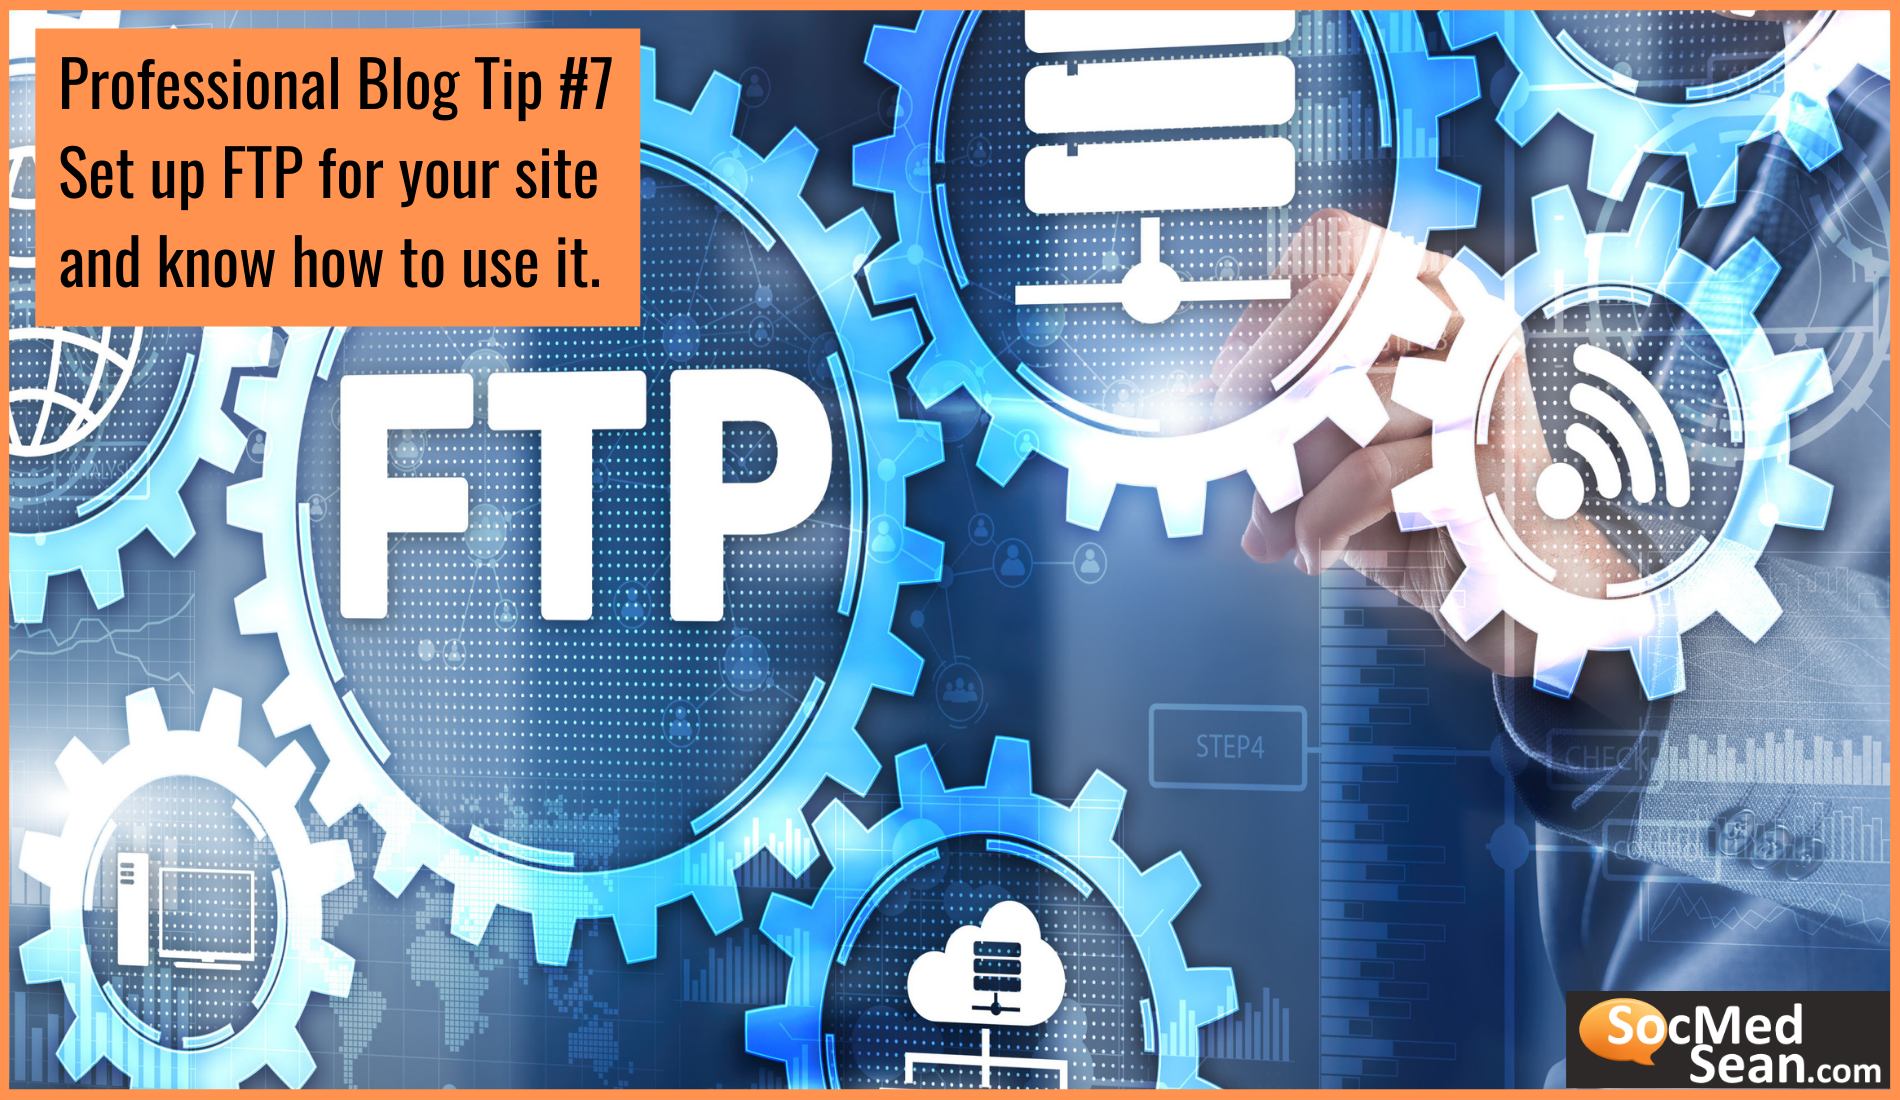 Blogging Tip - Learn how to use FTP and configure it for your site